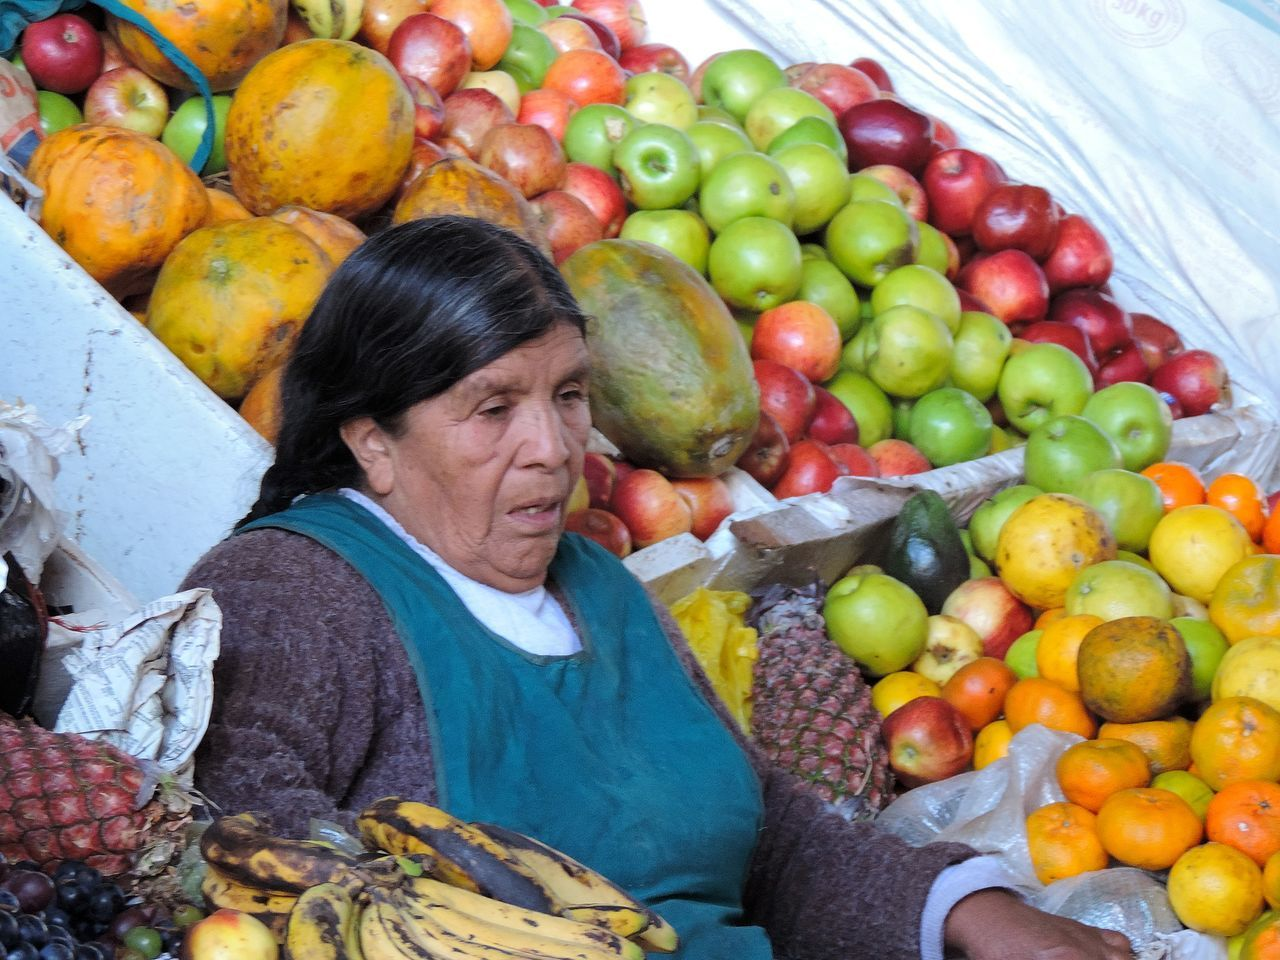 fruit, orange - fruit, food, healthy eating, food and drink, apple - fruit, choice, mature adult, freshness, senior adult, large group of objects, outdoors, basket, abundance, grape, one person, day, women, market, peach, looking at camera, only women, portrait, adults only, adult, grapefruit, pomegranate, one woman only, people